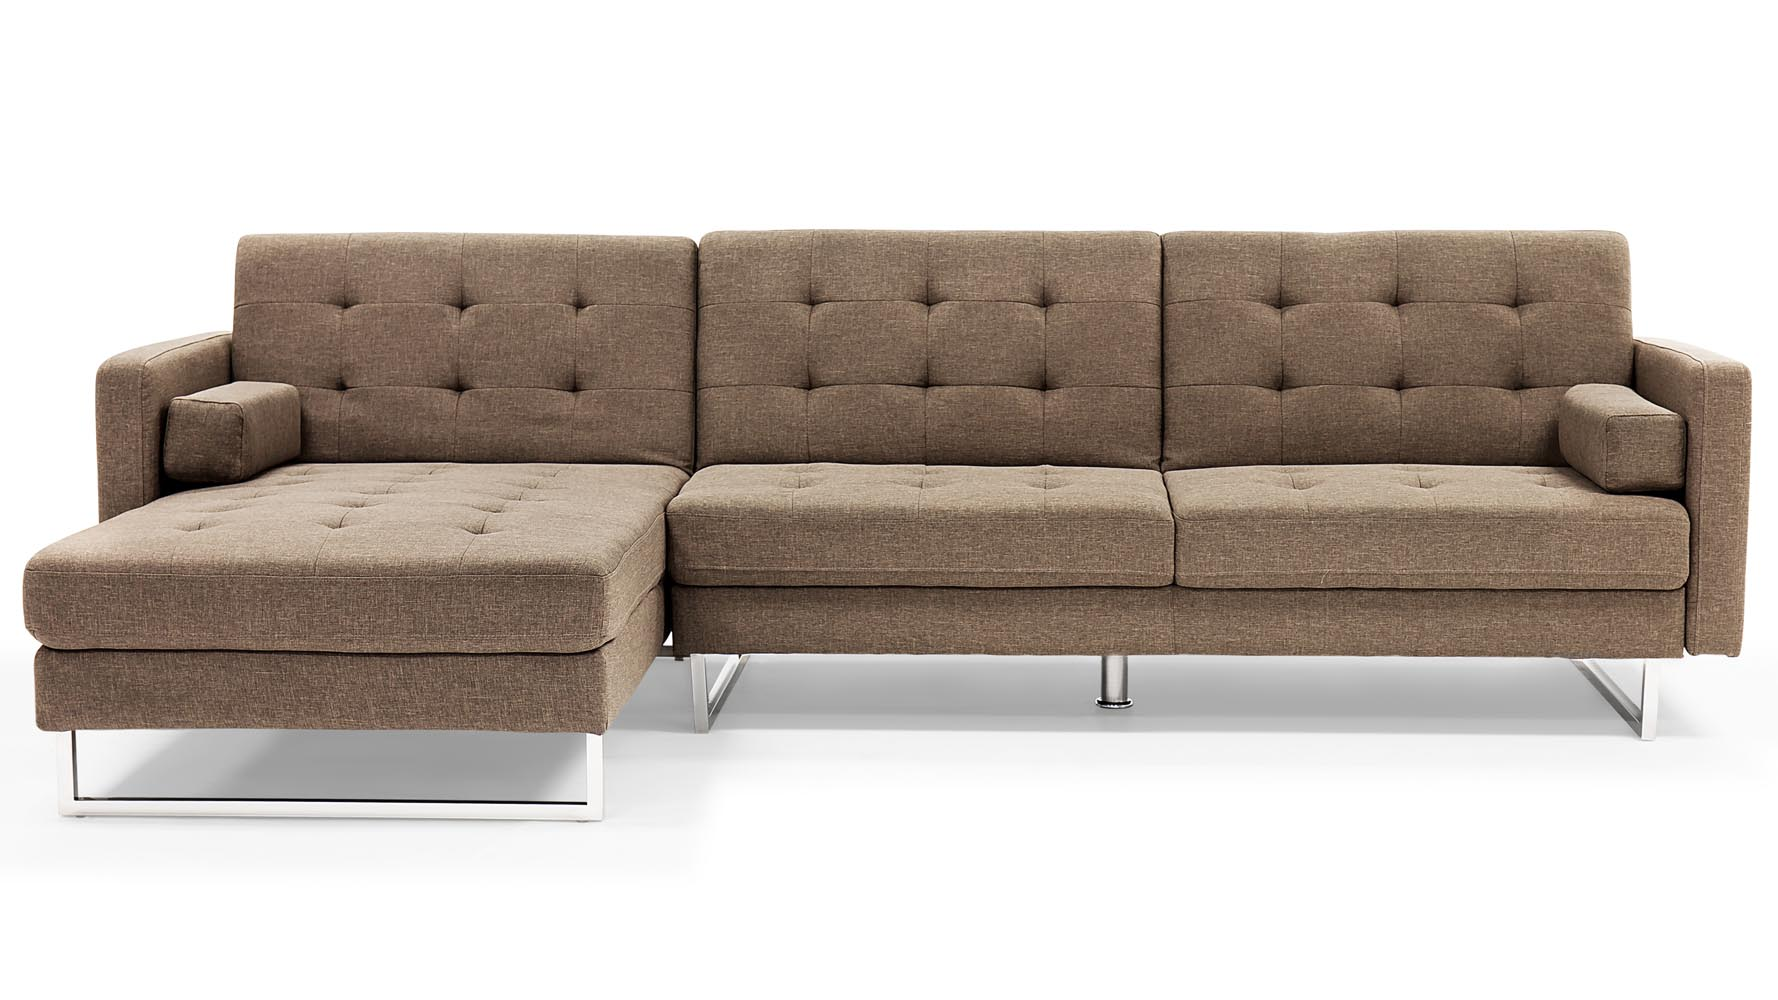 Quinn modern brown fabric upholstered sleeper sectional for Brown fabric couch